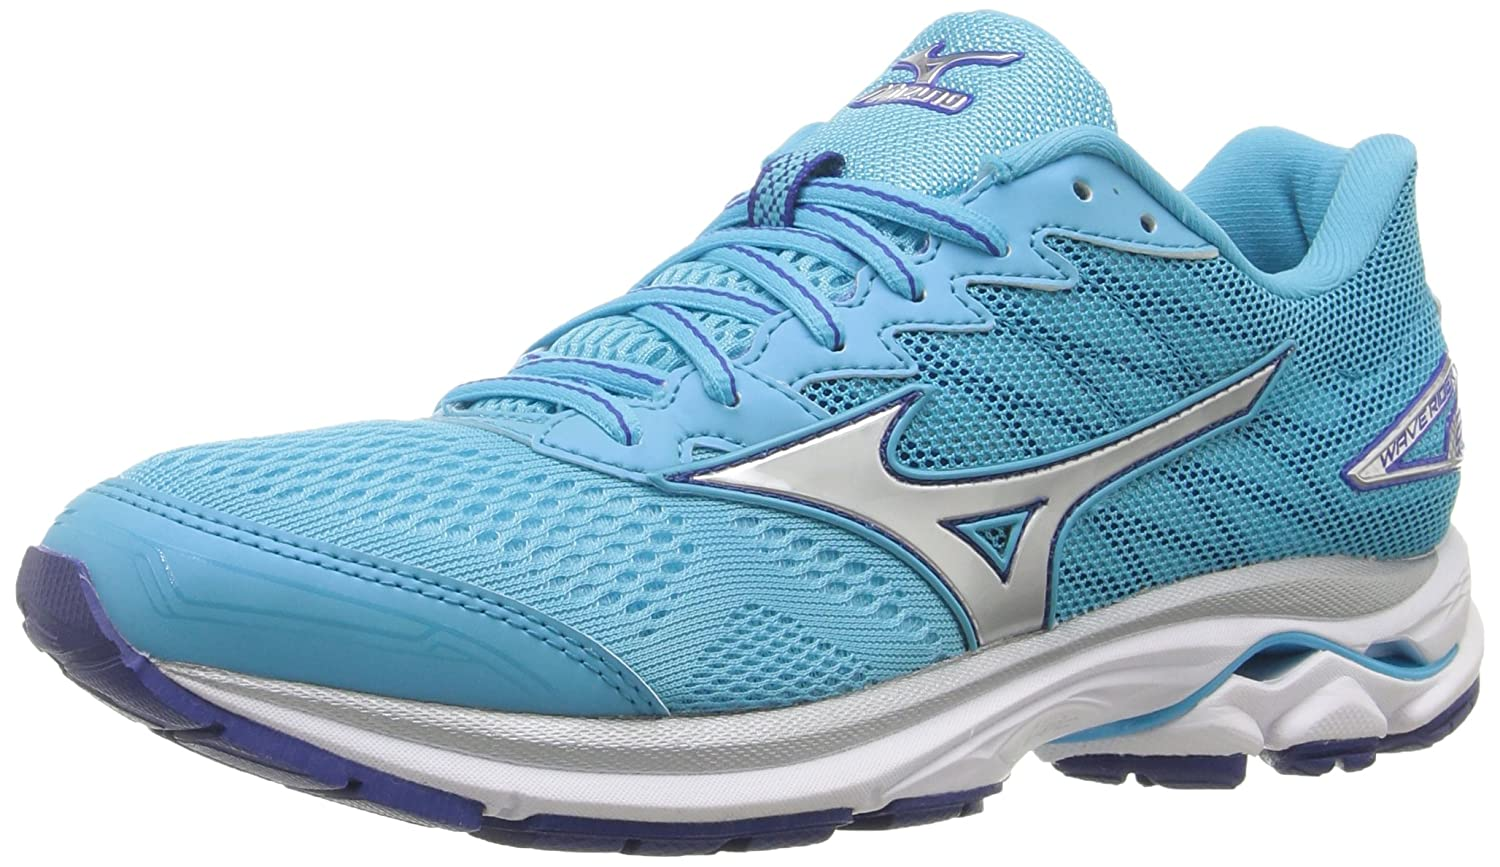 bluee Atoll Silver Mizuno Women's Wave Rider 20 D Running shoes